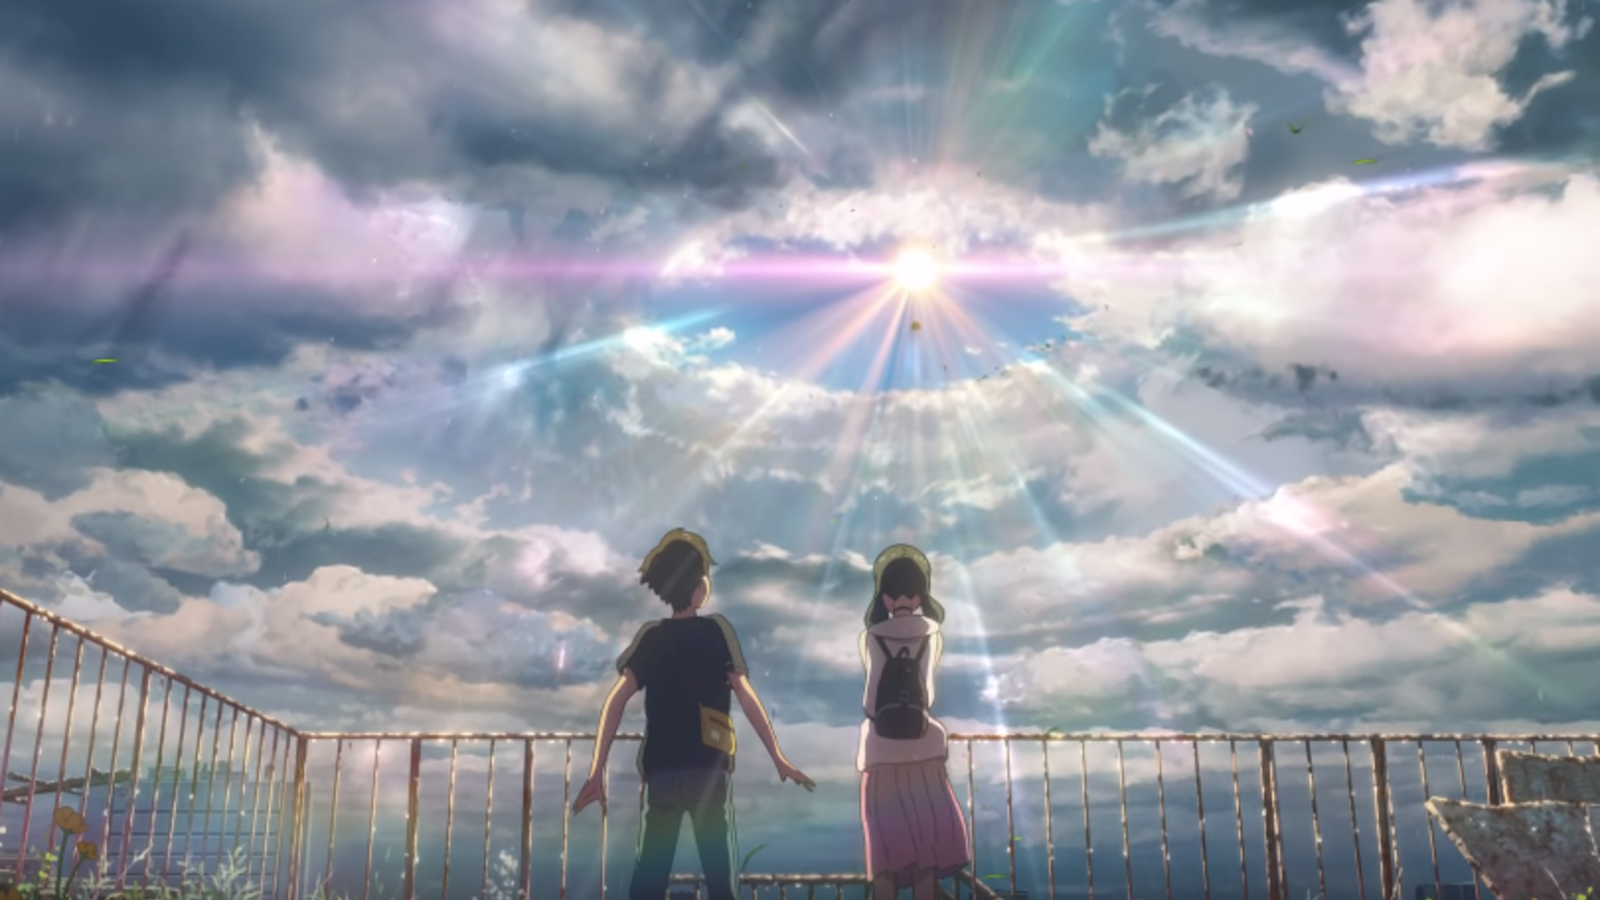 Japan S Weathering With You Is Country S First Anime Film In Over 20 Years To Be Up For International Film Oscar In 2020 Geektyrant